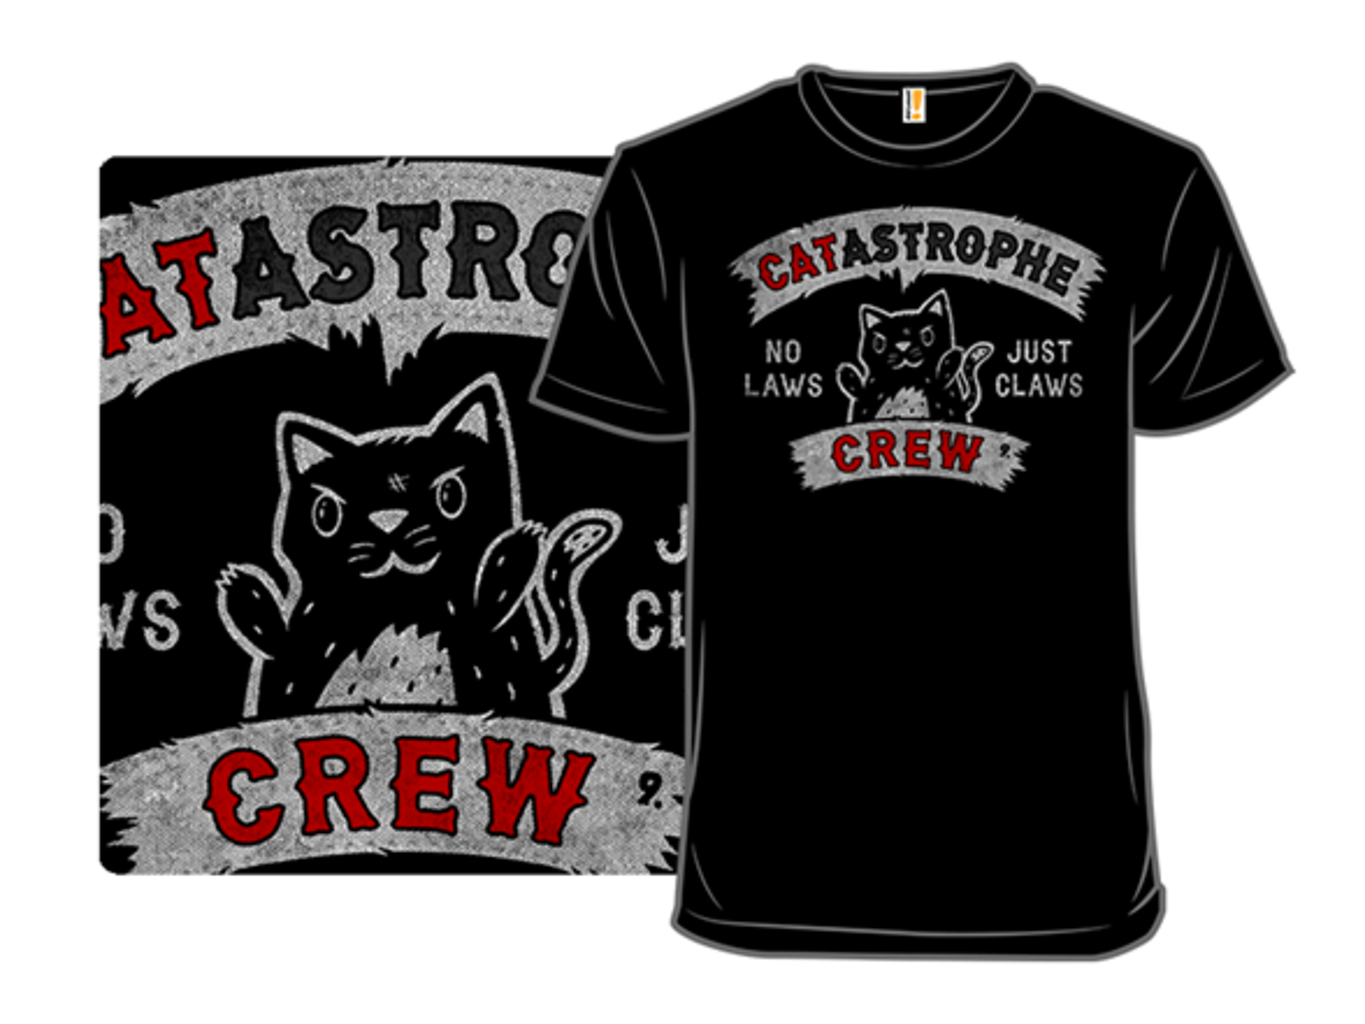 Woot!: CATastrophy Crew - $15.00 + Free shipping